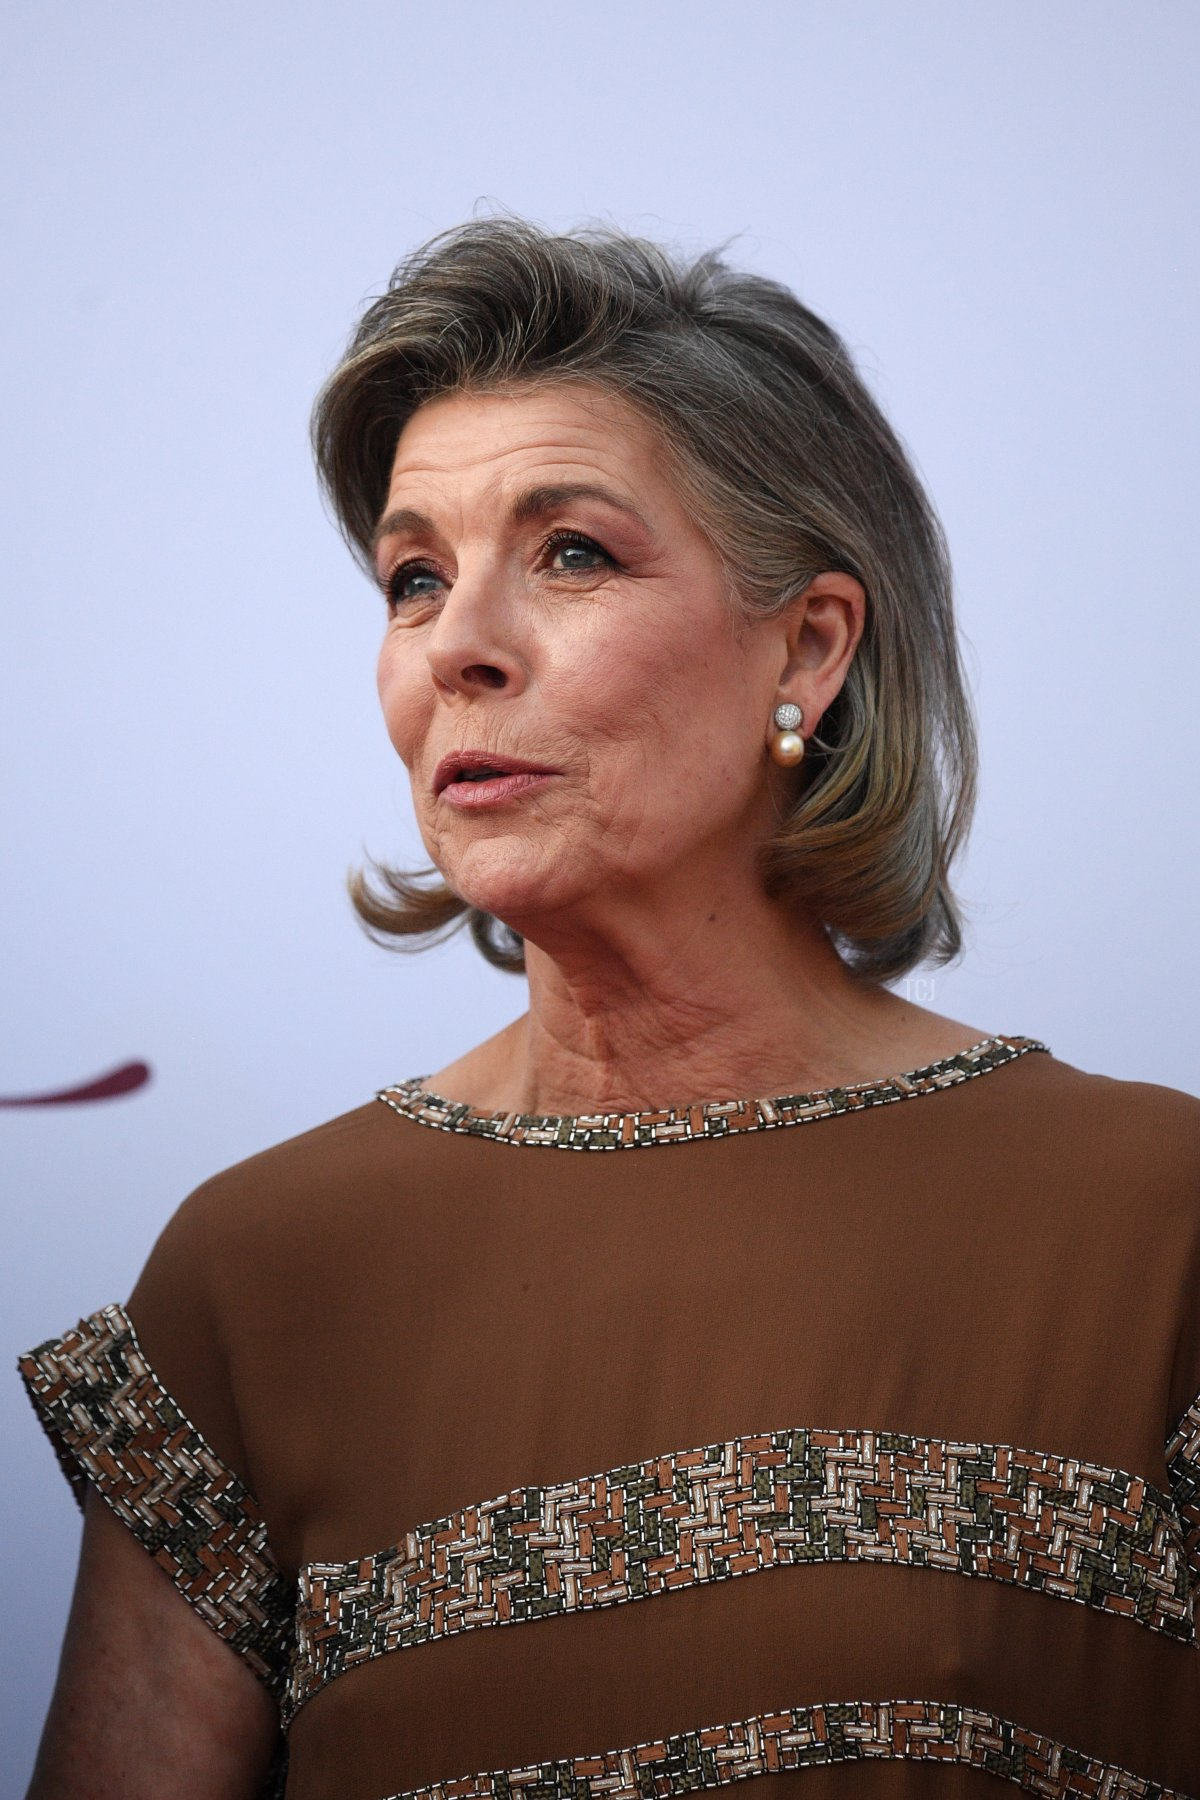 Princess Caroline of Hanover attends the Red Cross Summer Concert on July 16, 2021 in Monte-Carlo, Monaco